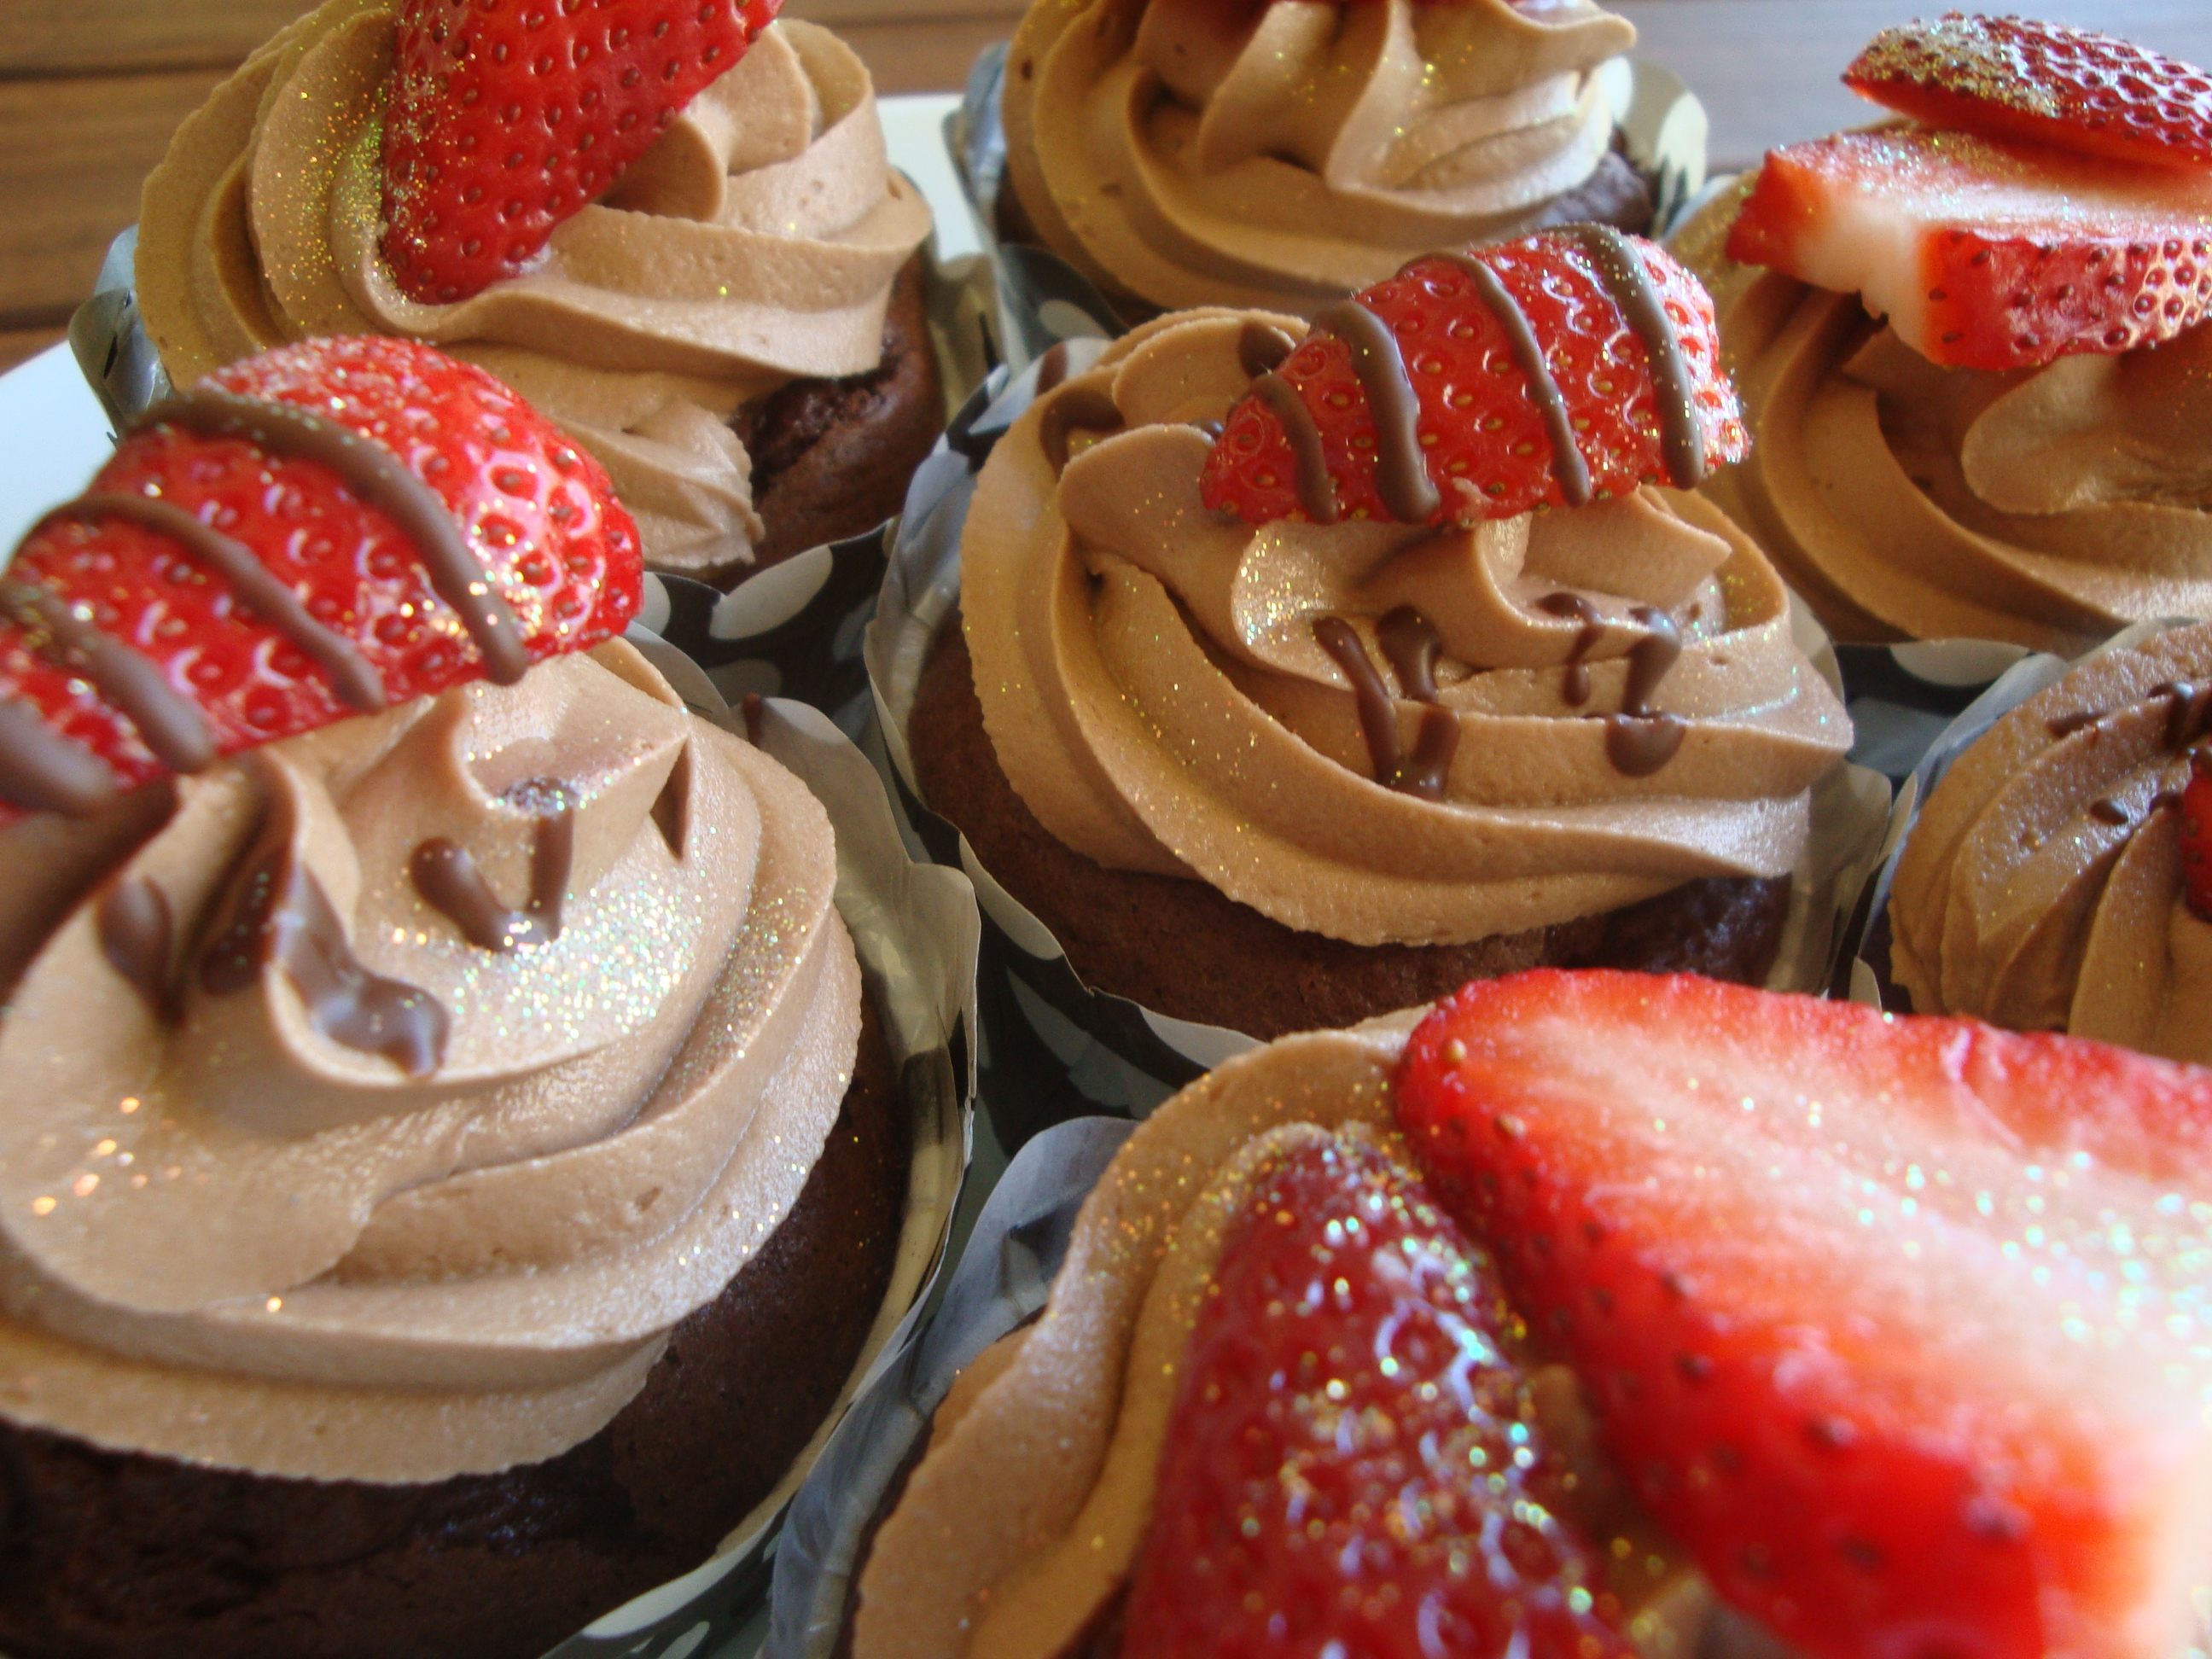 Strawberry & Dark Chocolate Cupcakes